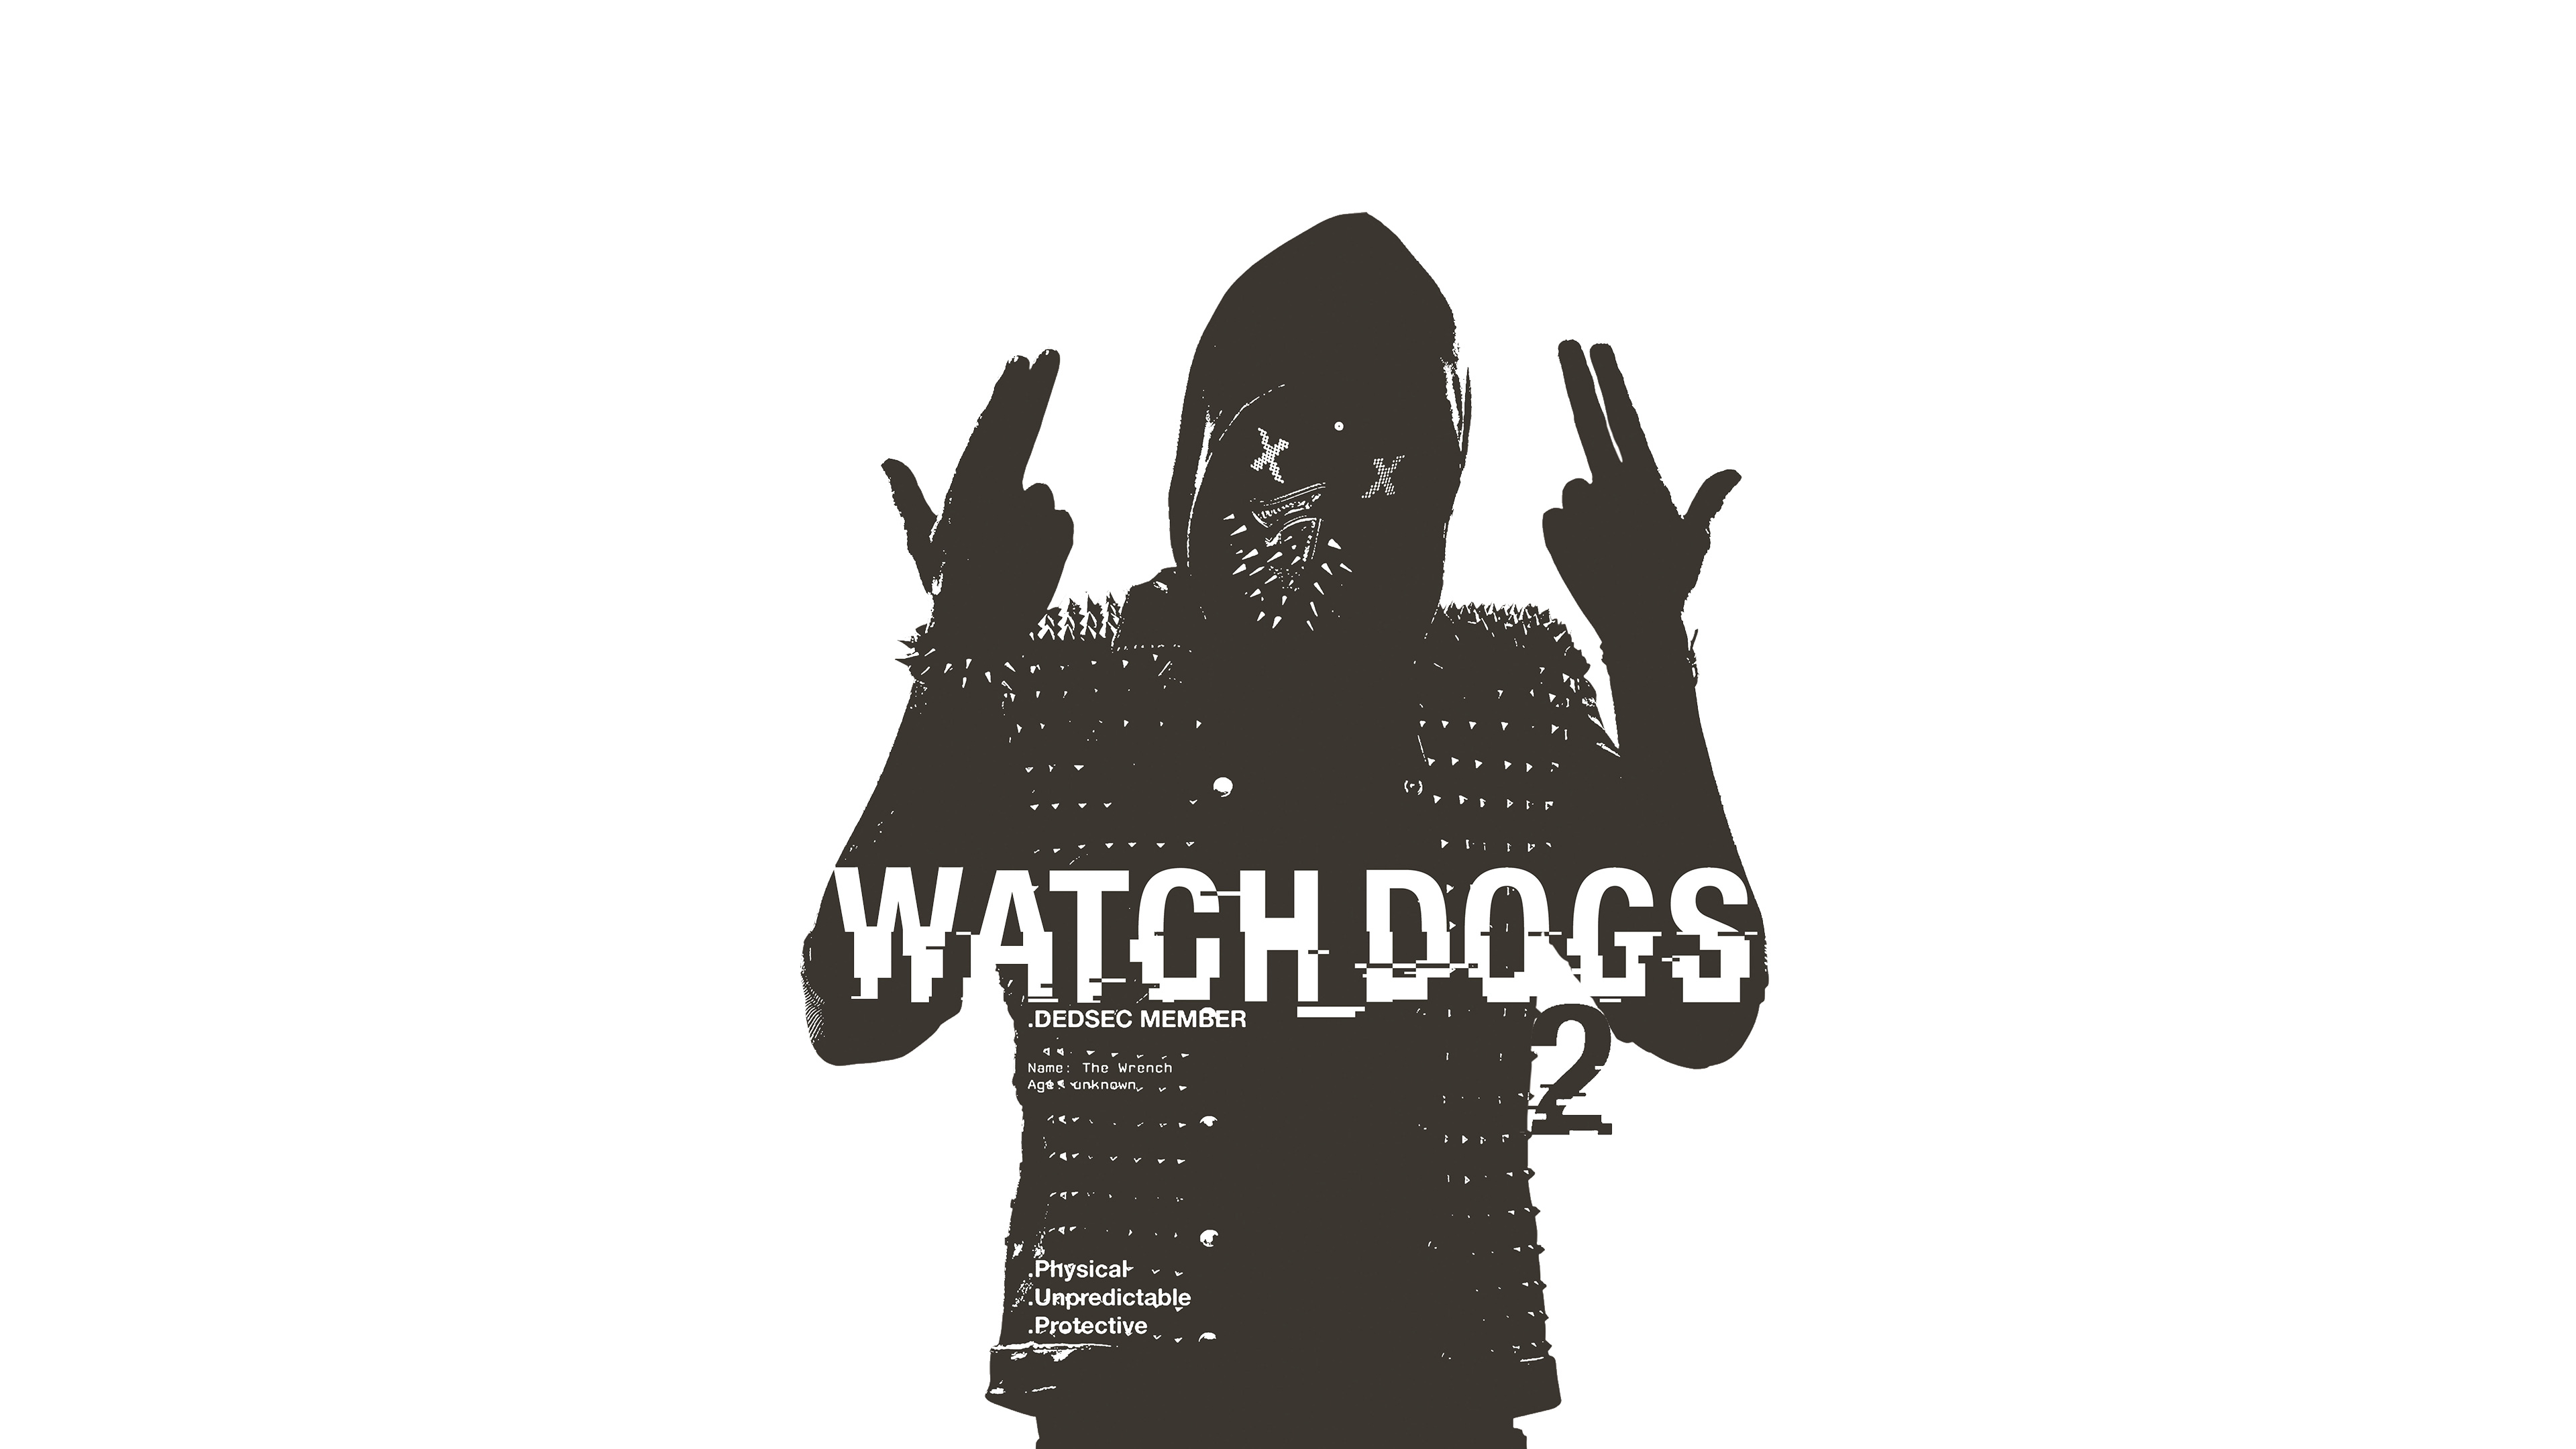 Watch Dogs 2 Wrench Poster Hd Games 4k Wallpapers Images